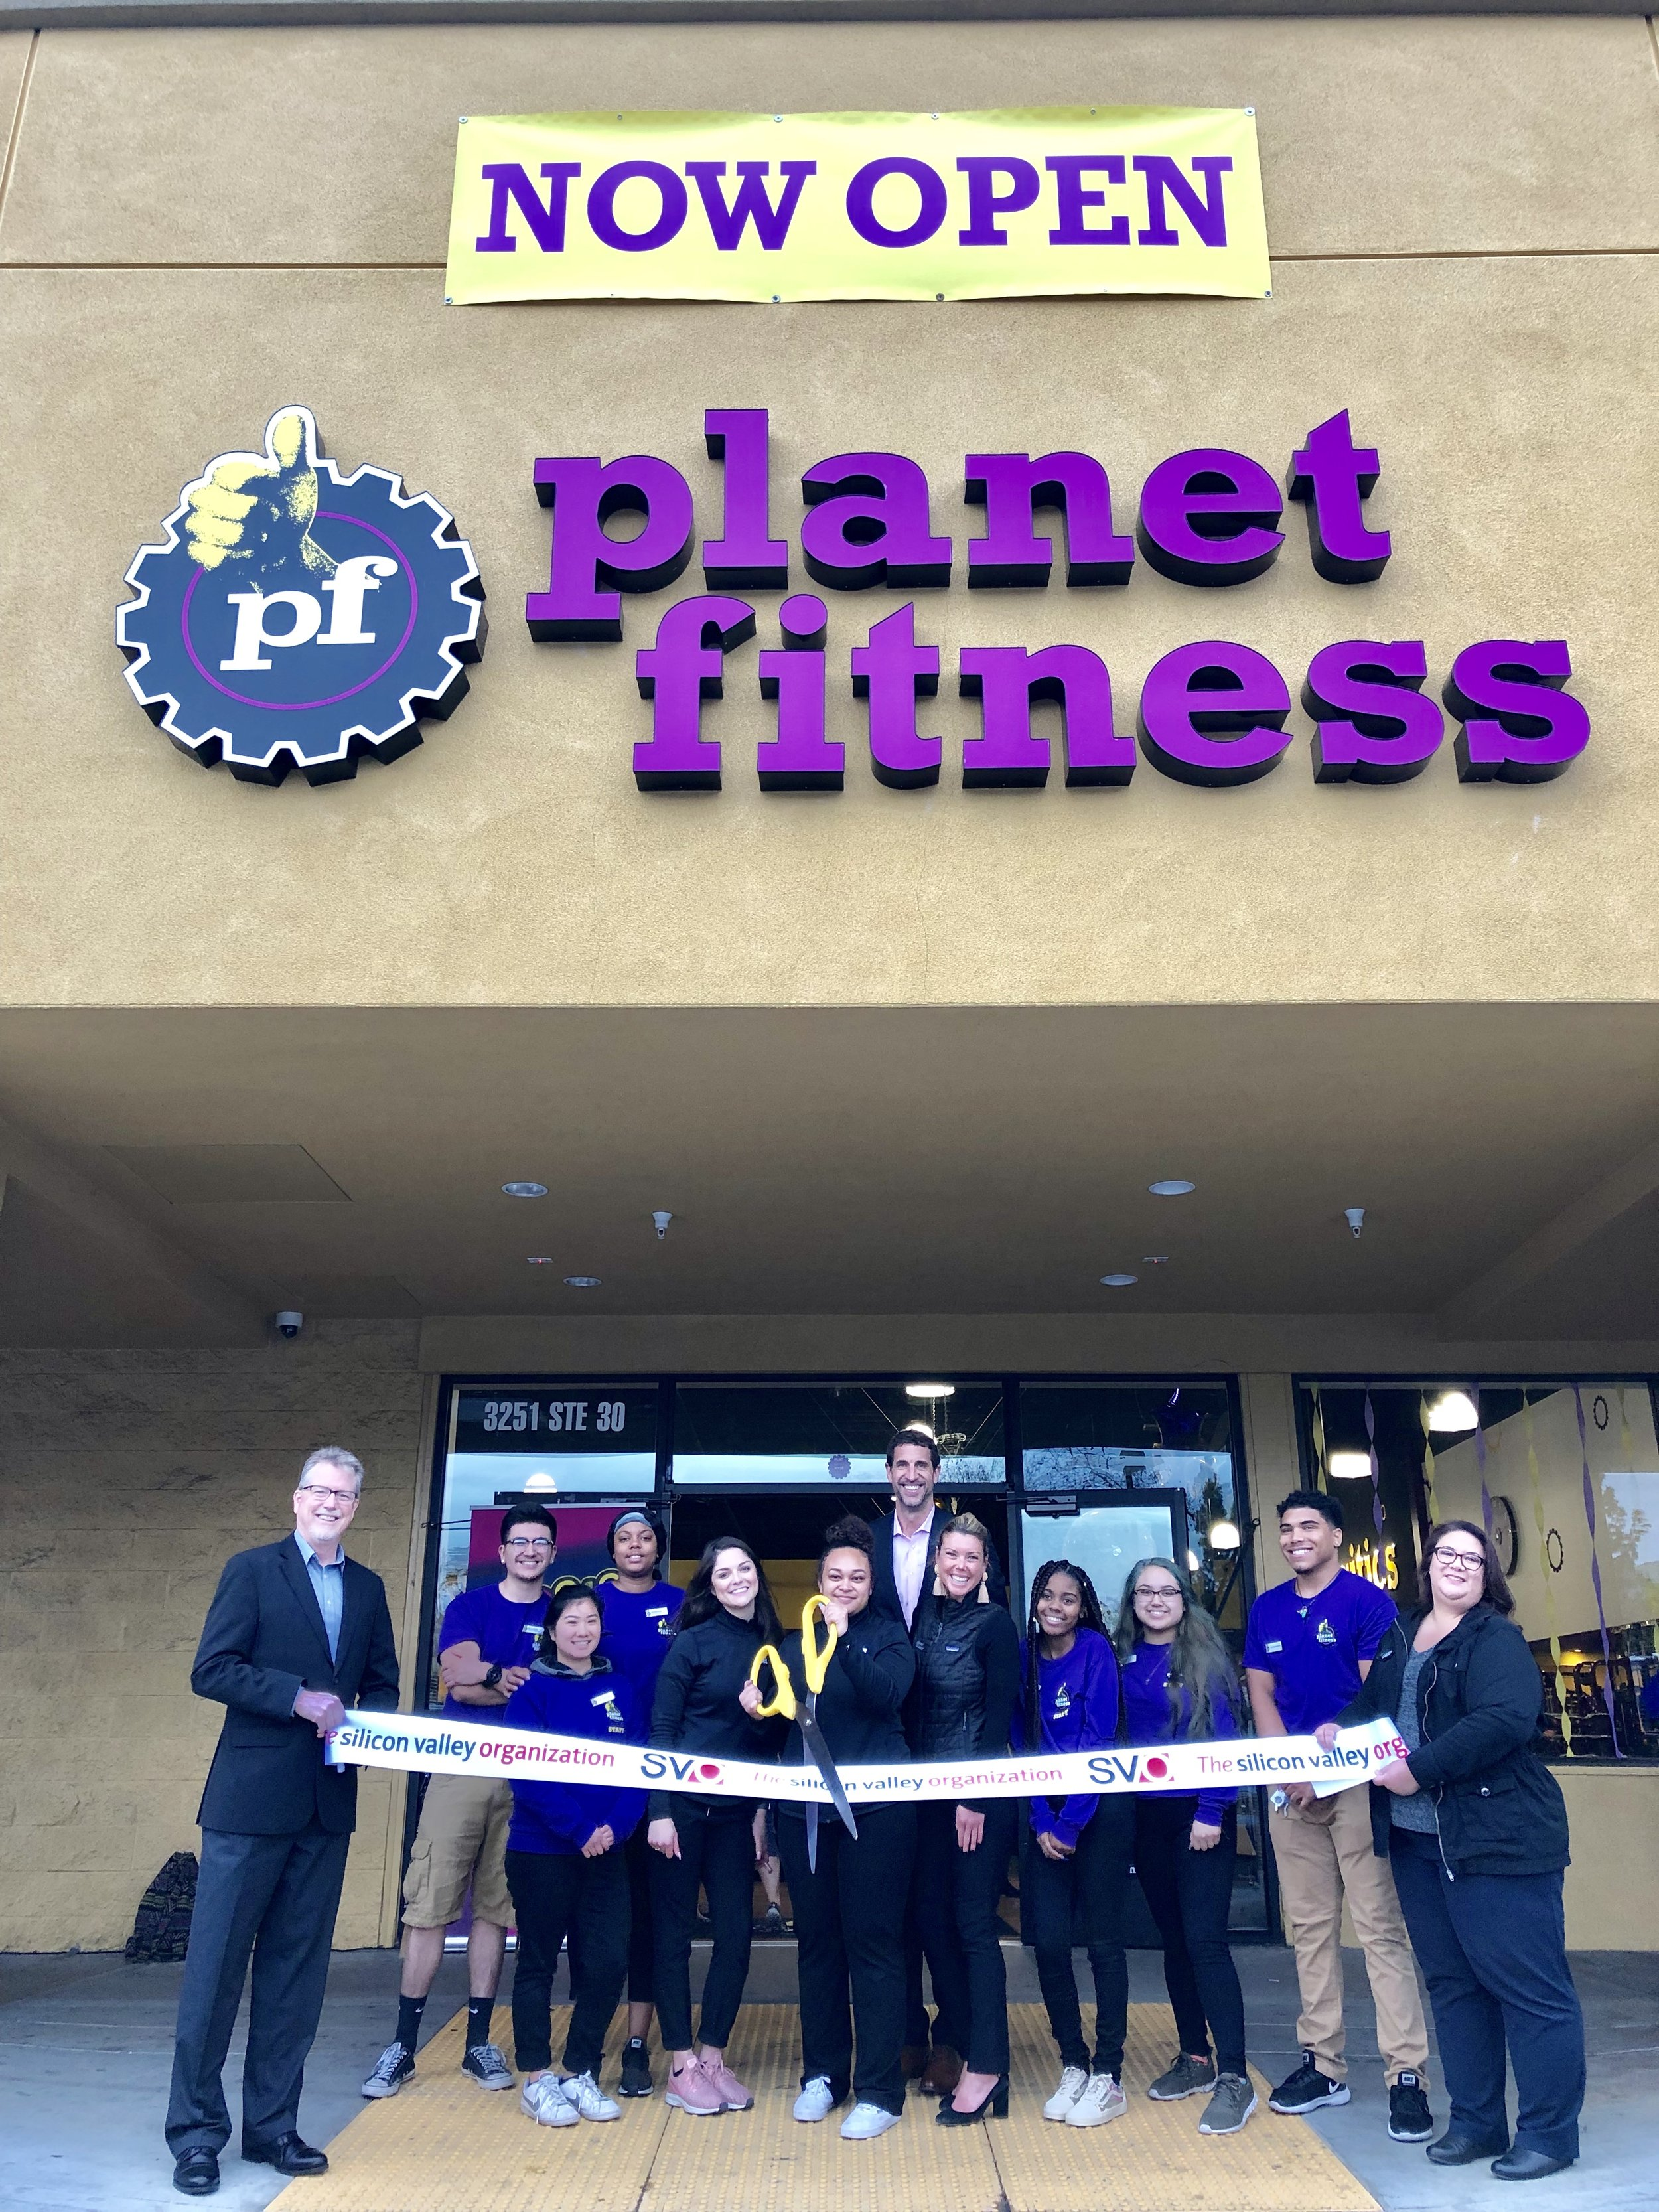 Planet Fitness offers San Jose residents a non-intimidating Judgement Free Zone® along with extremely low prices and free fitness training  Join now for just $1 down and then $10 a month through Tuesday, February 26